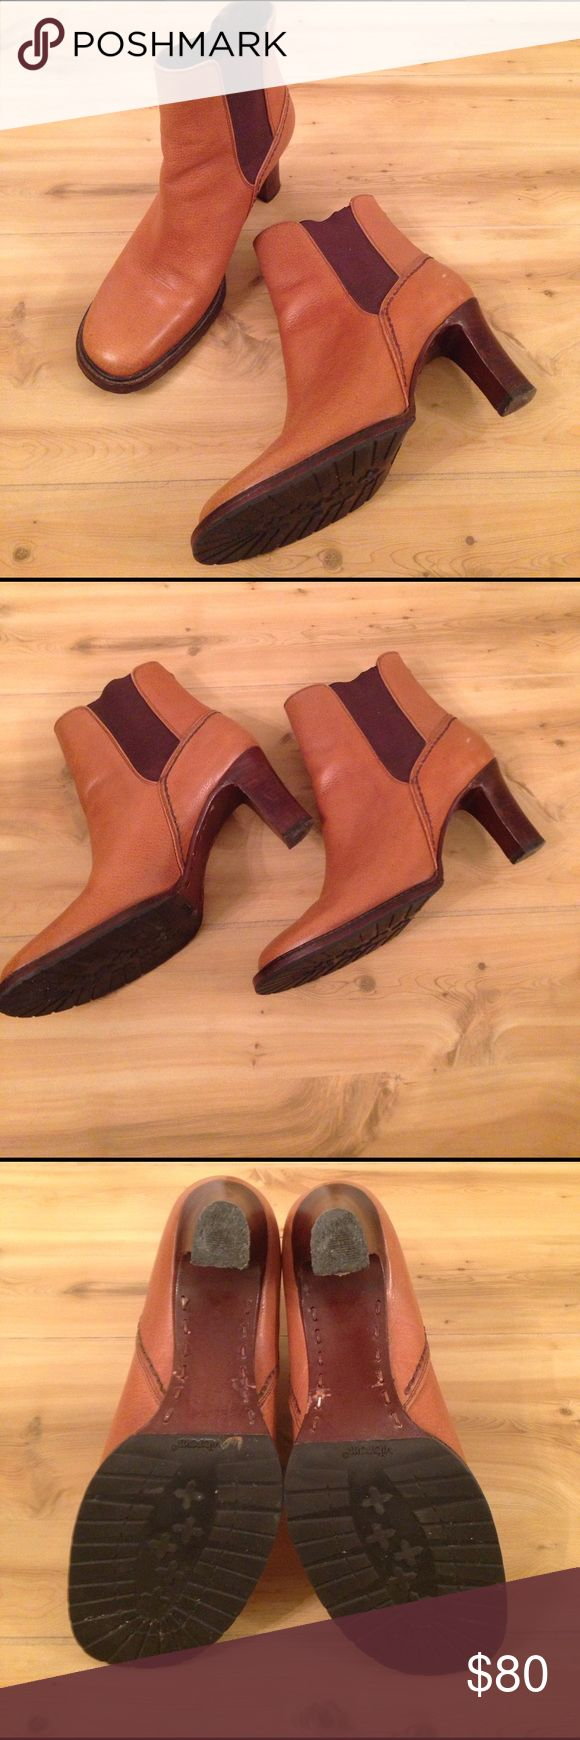 Cole Haan Heeled Boots Beautiful Cole Haan Heeled Boots for sale! Carmel and dark brown color. Has some wear, please see photos and ask questions if you have them. Size 6.5B Cole Haan Shoes Heeled Boots